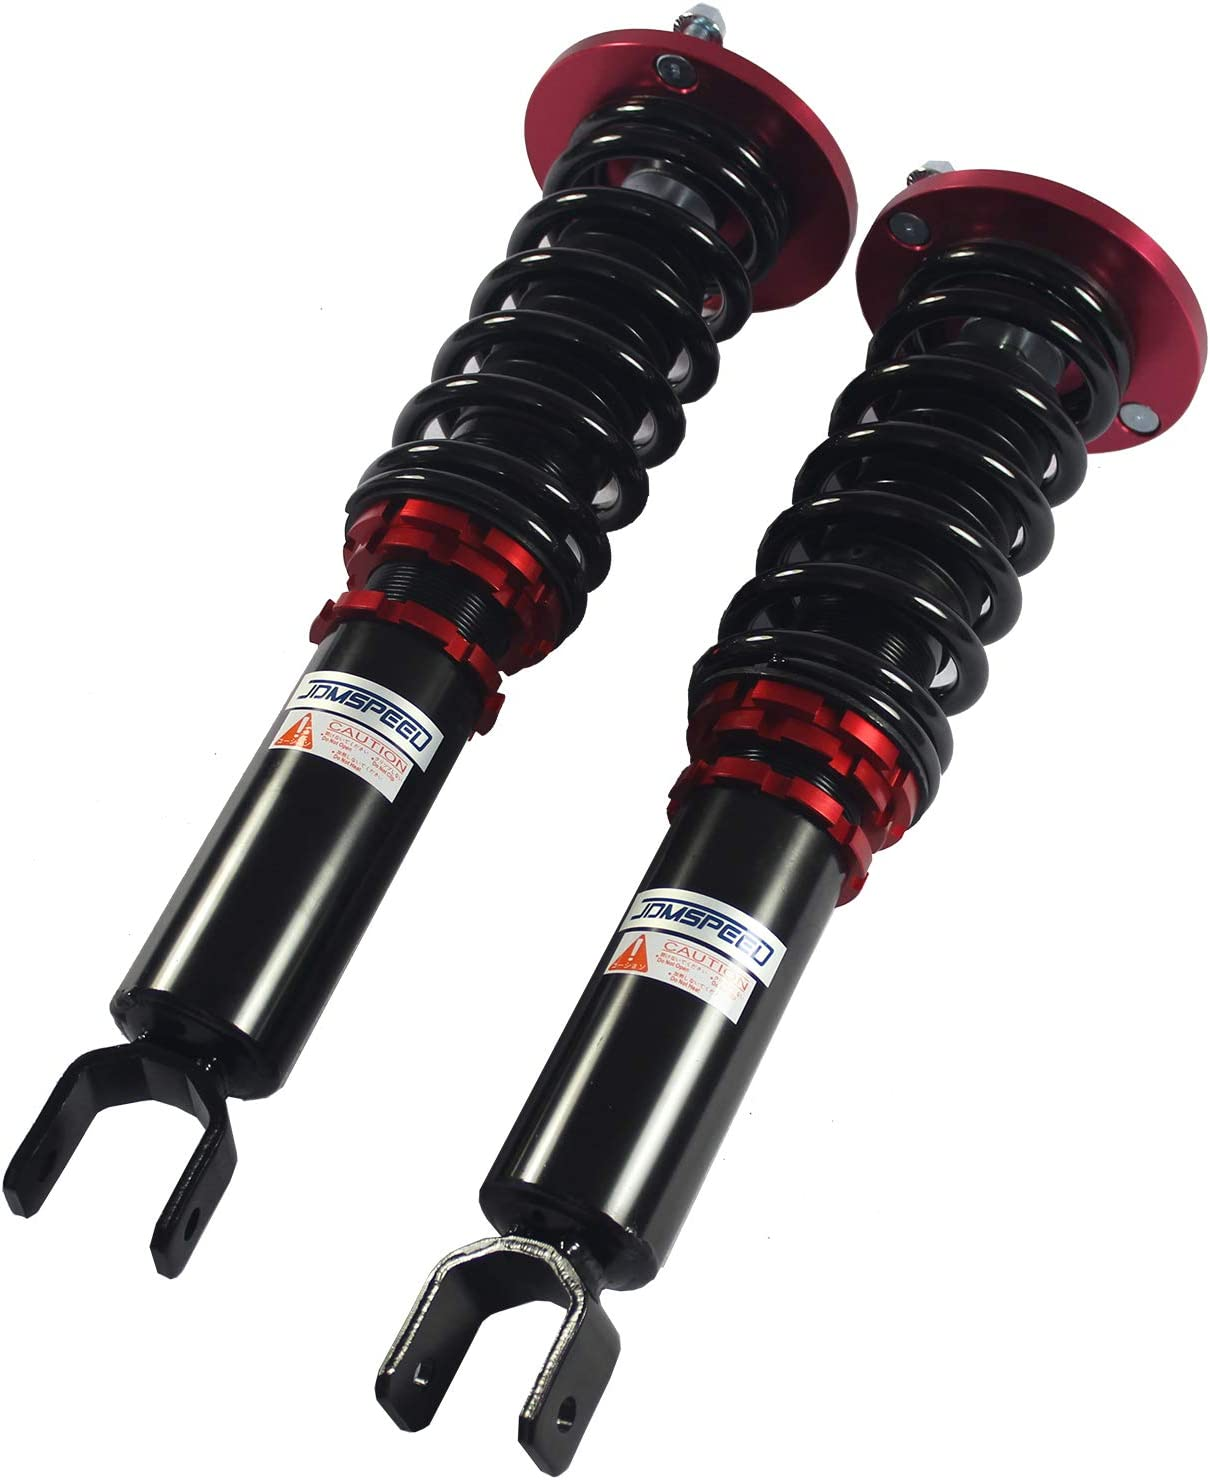 JDMSPEED New Coilovers Suspension Kit Shock Absorbers Set Red Fit For Honda Accord 1990-1997